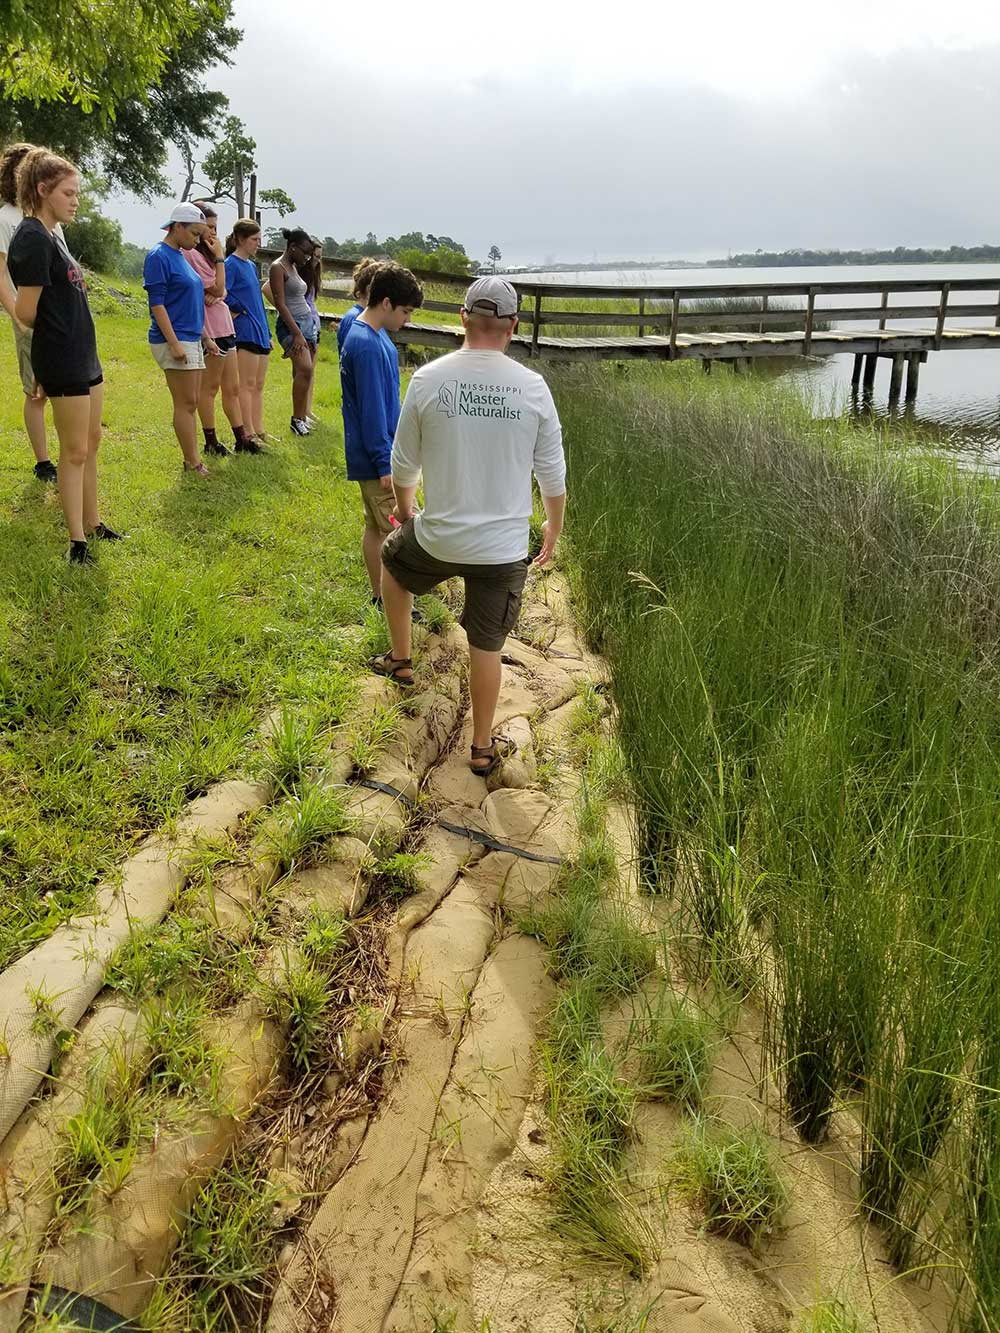 Interns learning about living shorelines as part of Student Master Naturalist Program. A group stands in the grass by a dock/ramp looking at the water/shorline